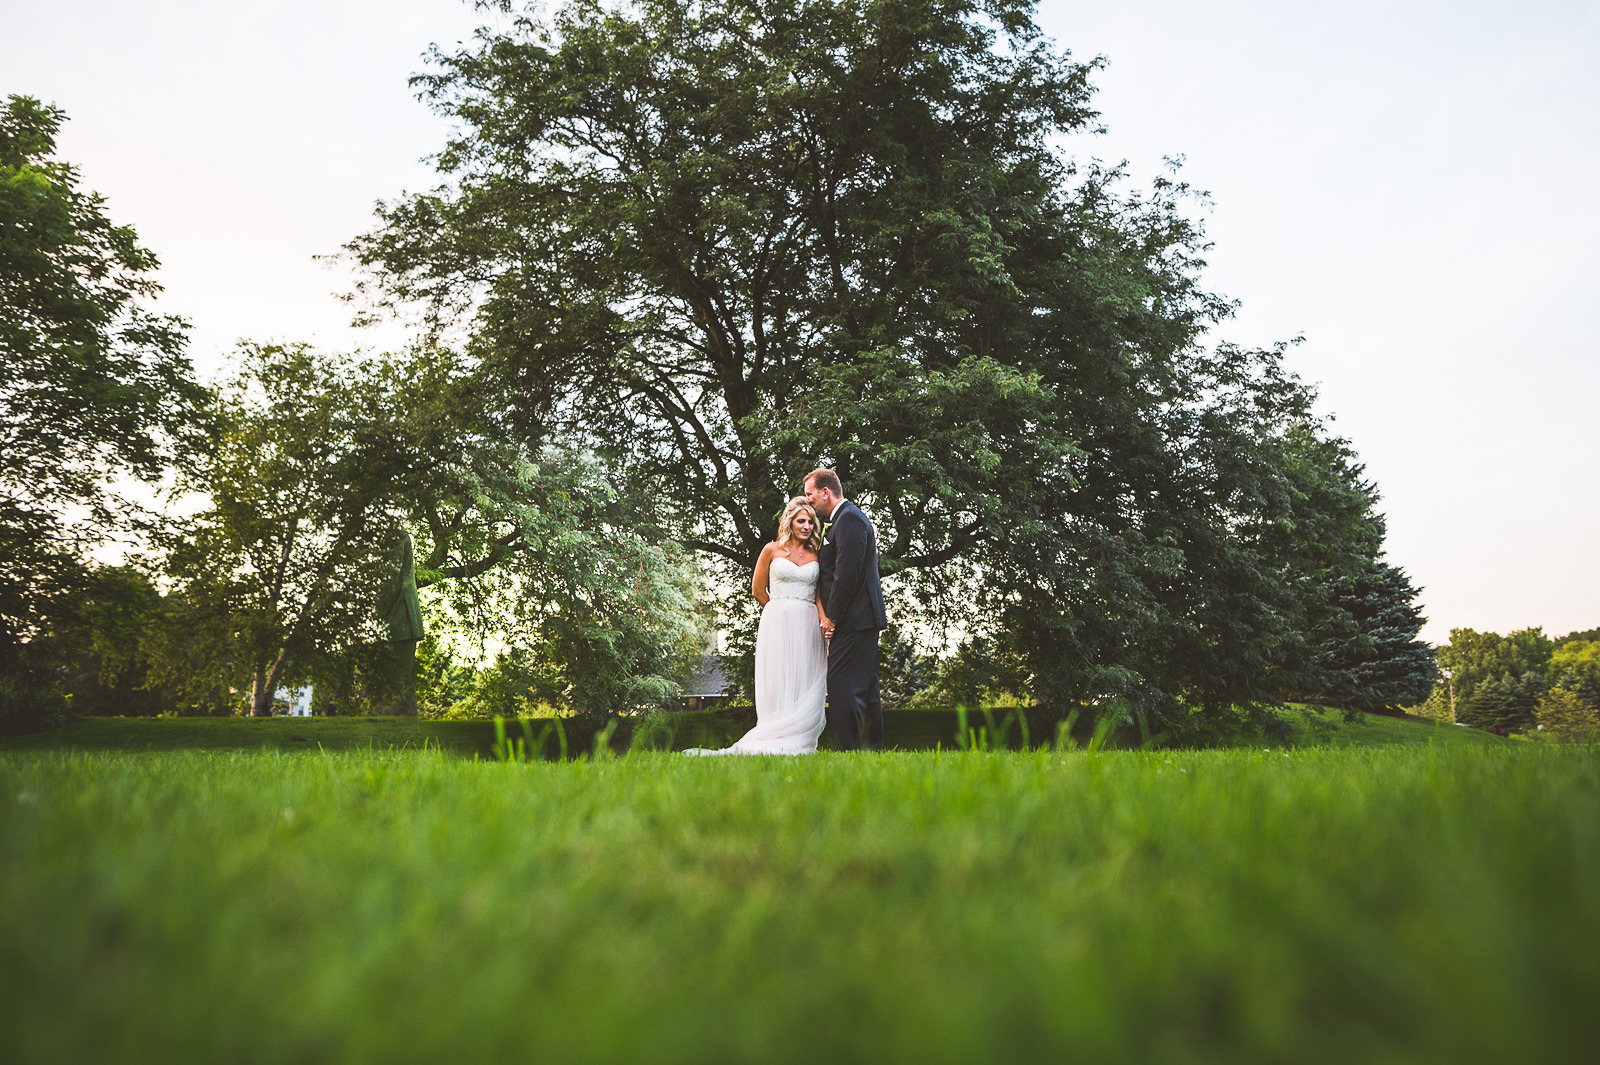 48 wedding photos at fishermans inn - Karen + Scott // Fishermens Inn Wedding Photographer Elburn Illinois